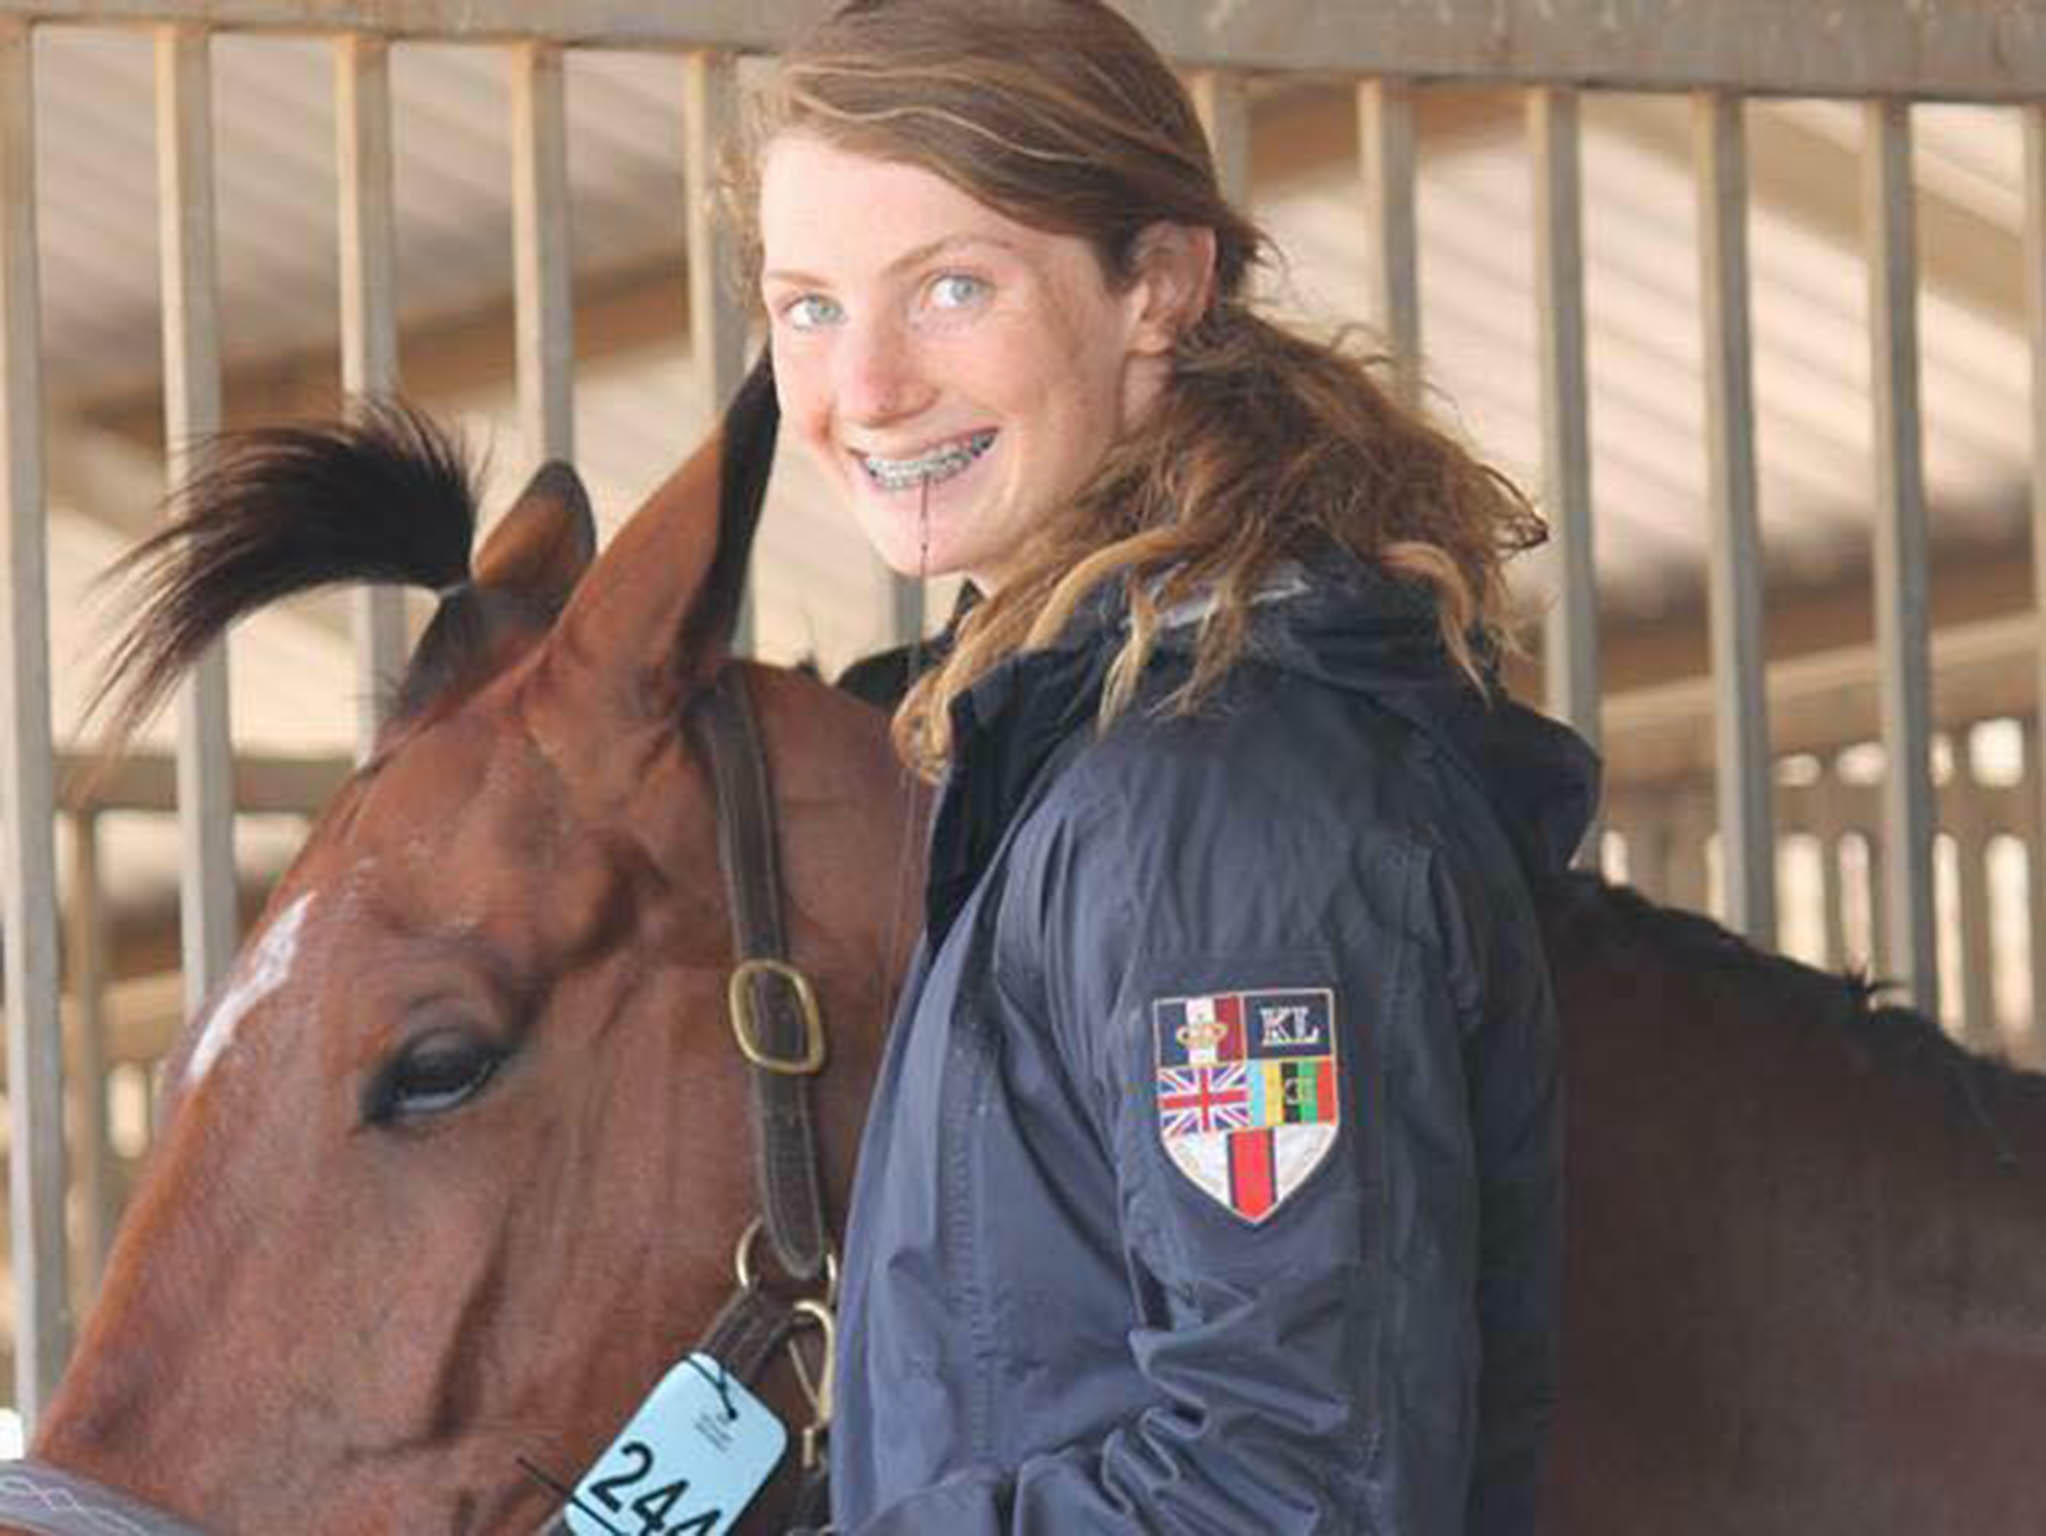 olivia inglis: young equestrian star crushed to deathown horse